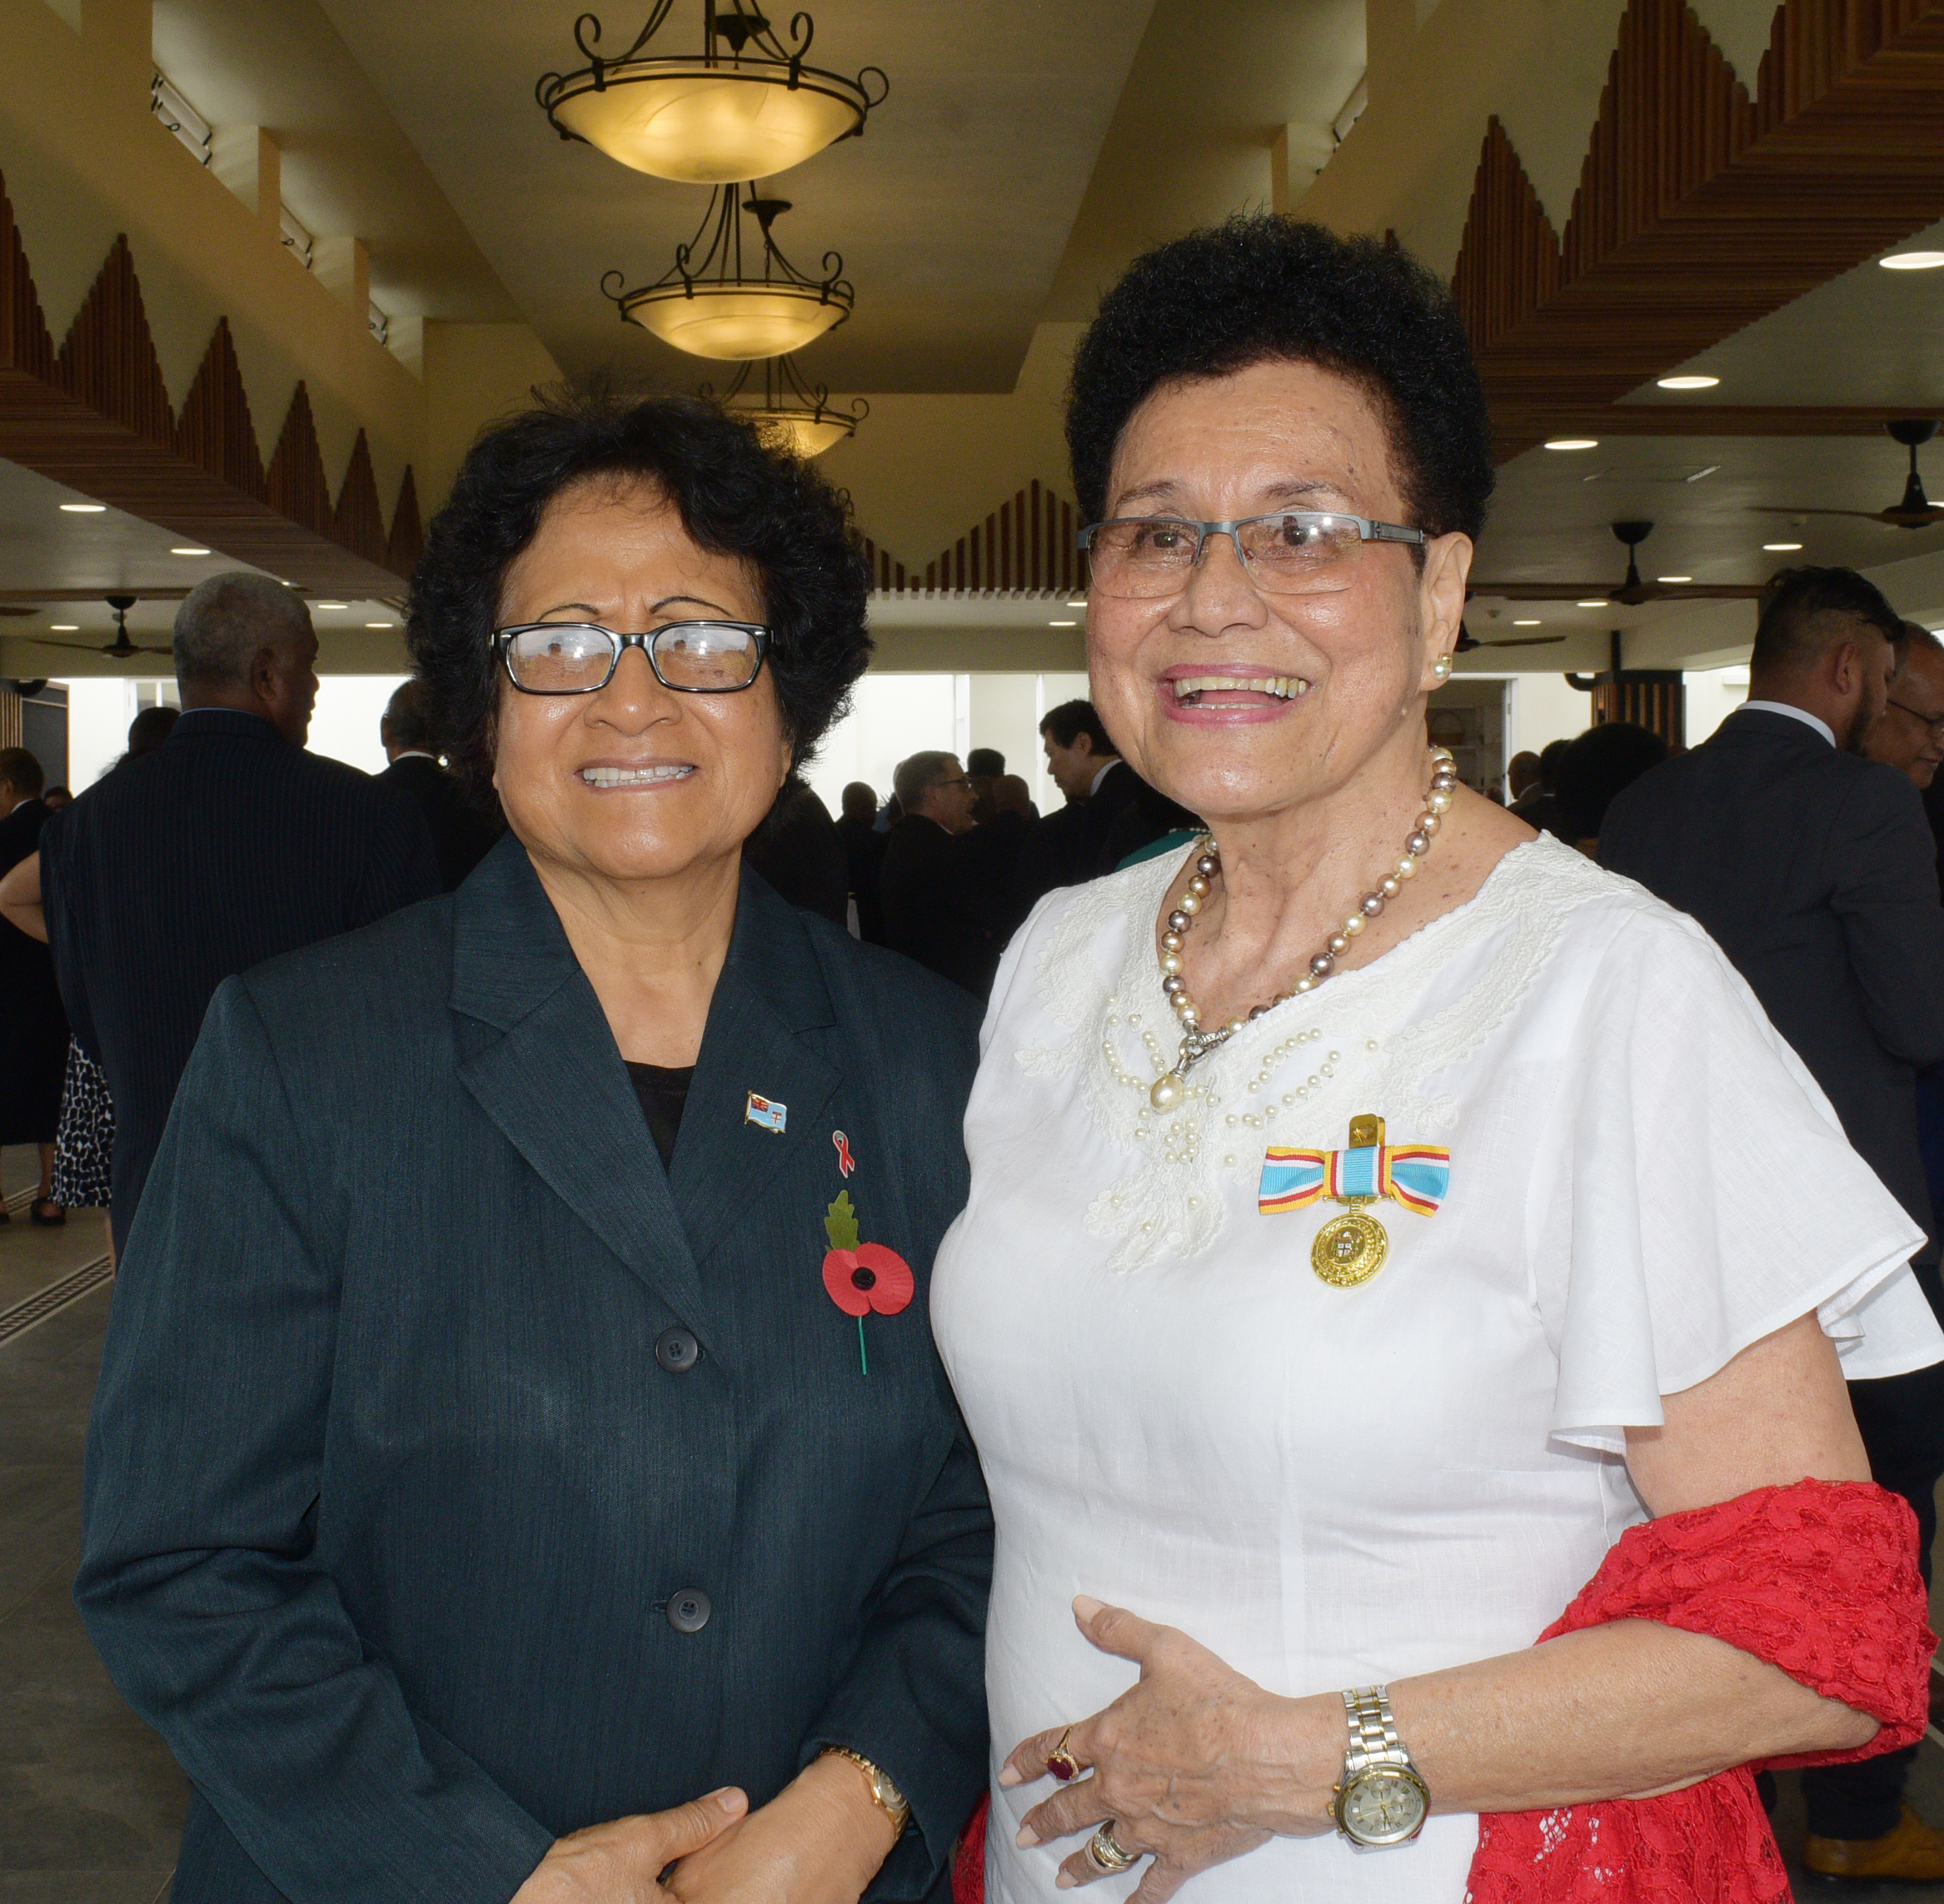 First Lady, Sarote Konrote (left) and Dr. Mere Samisoni  following the 50th anniversary of Independence commemorative medal investiture ceremony at State House on October 13, 2020. Photo: Ronald Kumar.